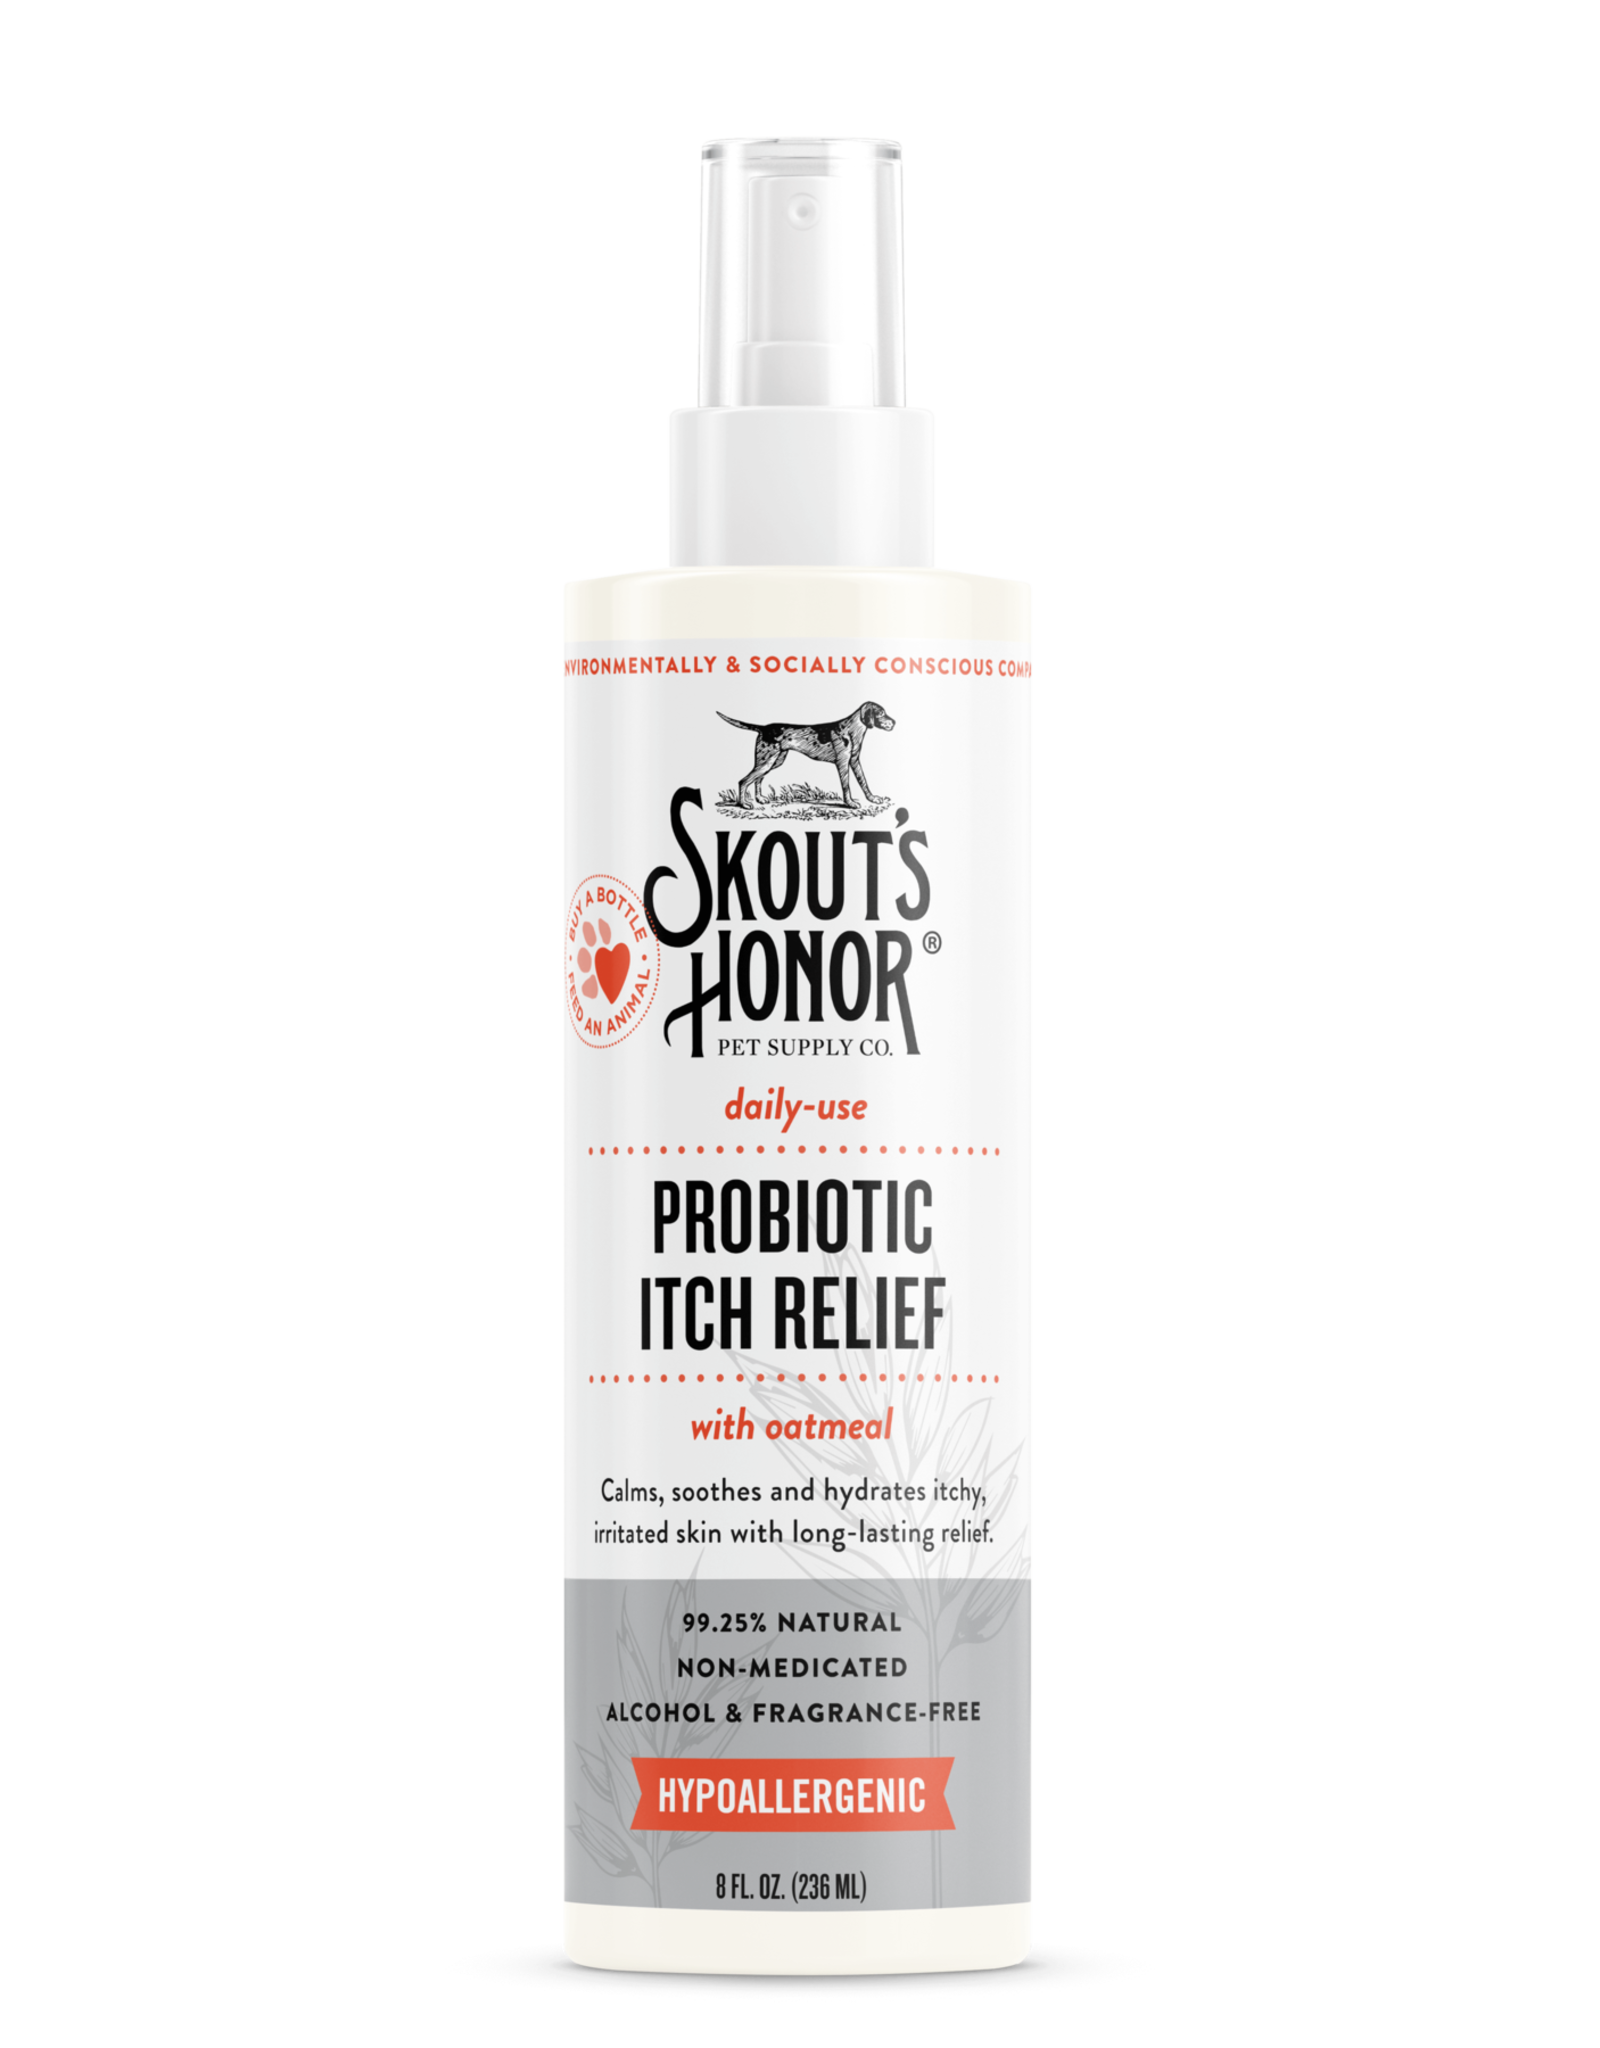 Skouts Honor Probiotic Itch Relief